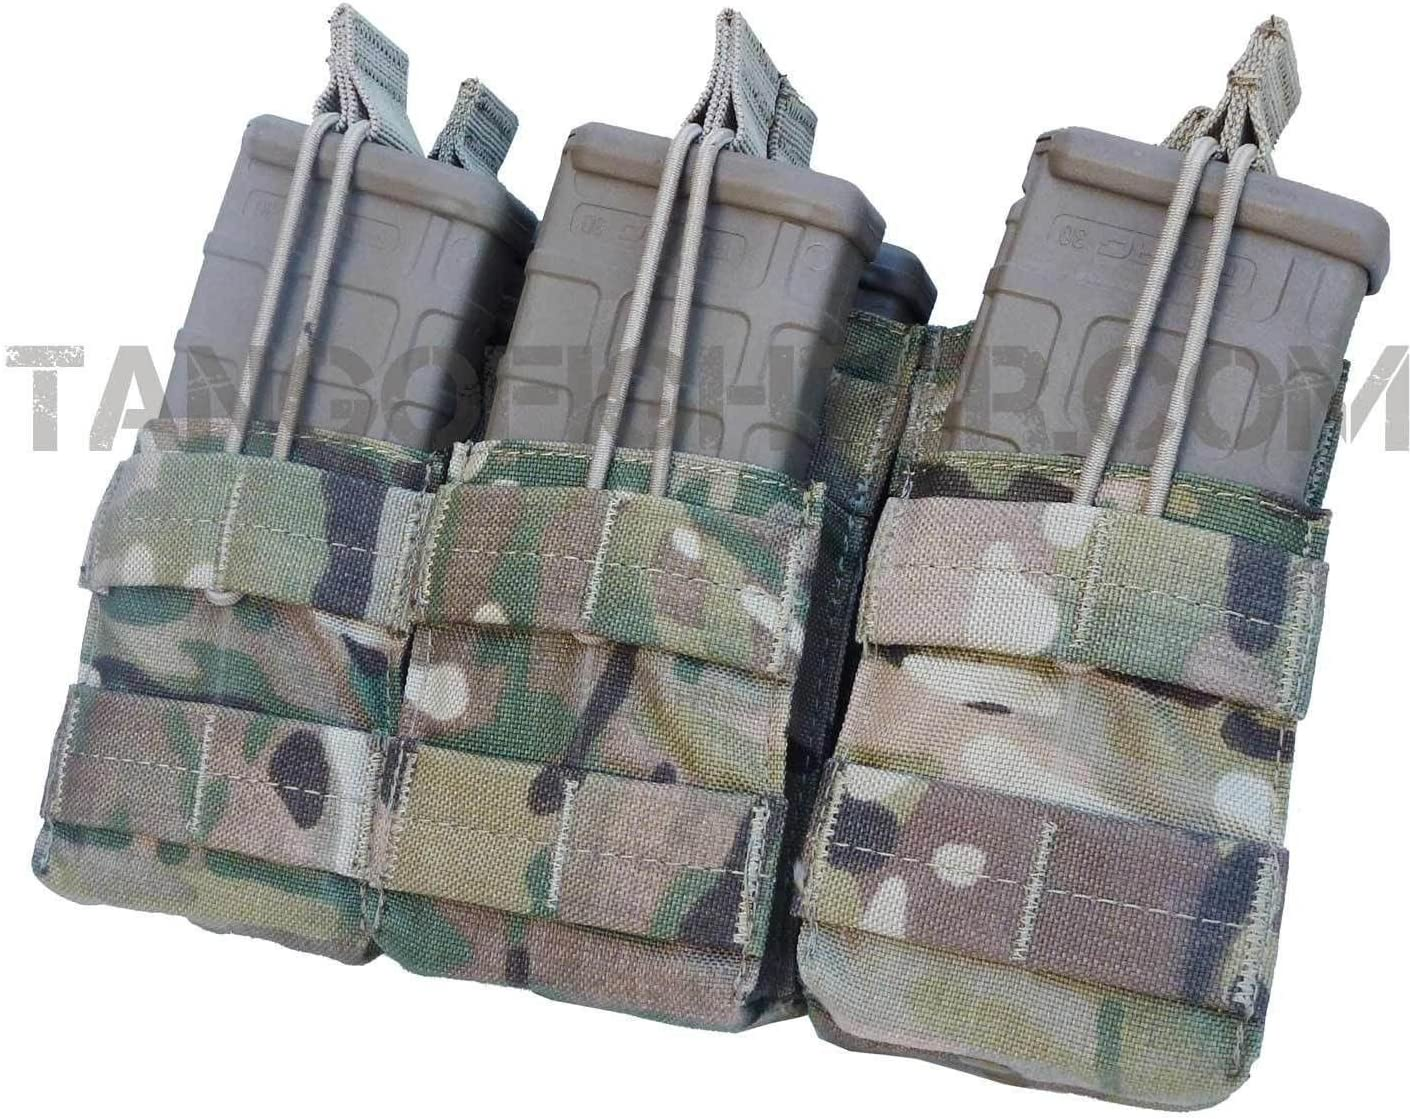 Condor Max 83% OFF Outdoor Triple Stacker M4 Pouch 5 ☆ very popular Mag